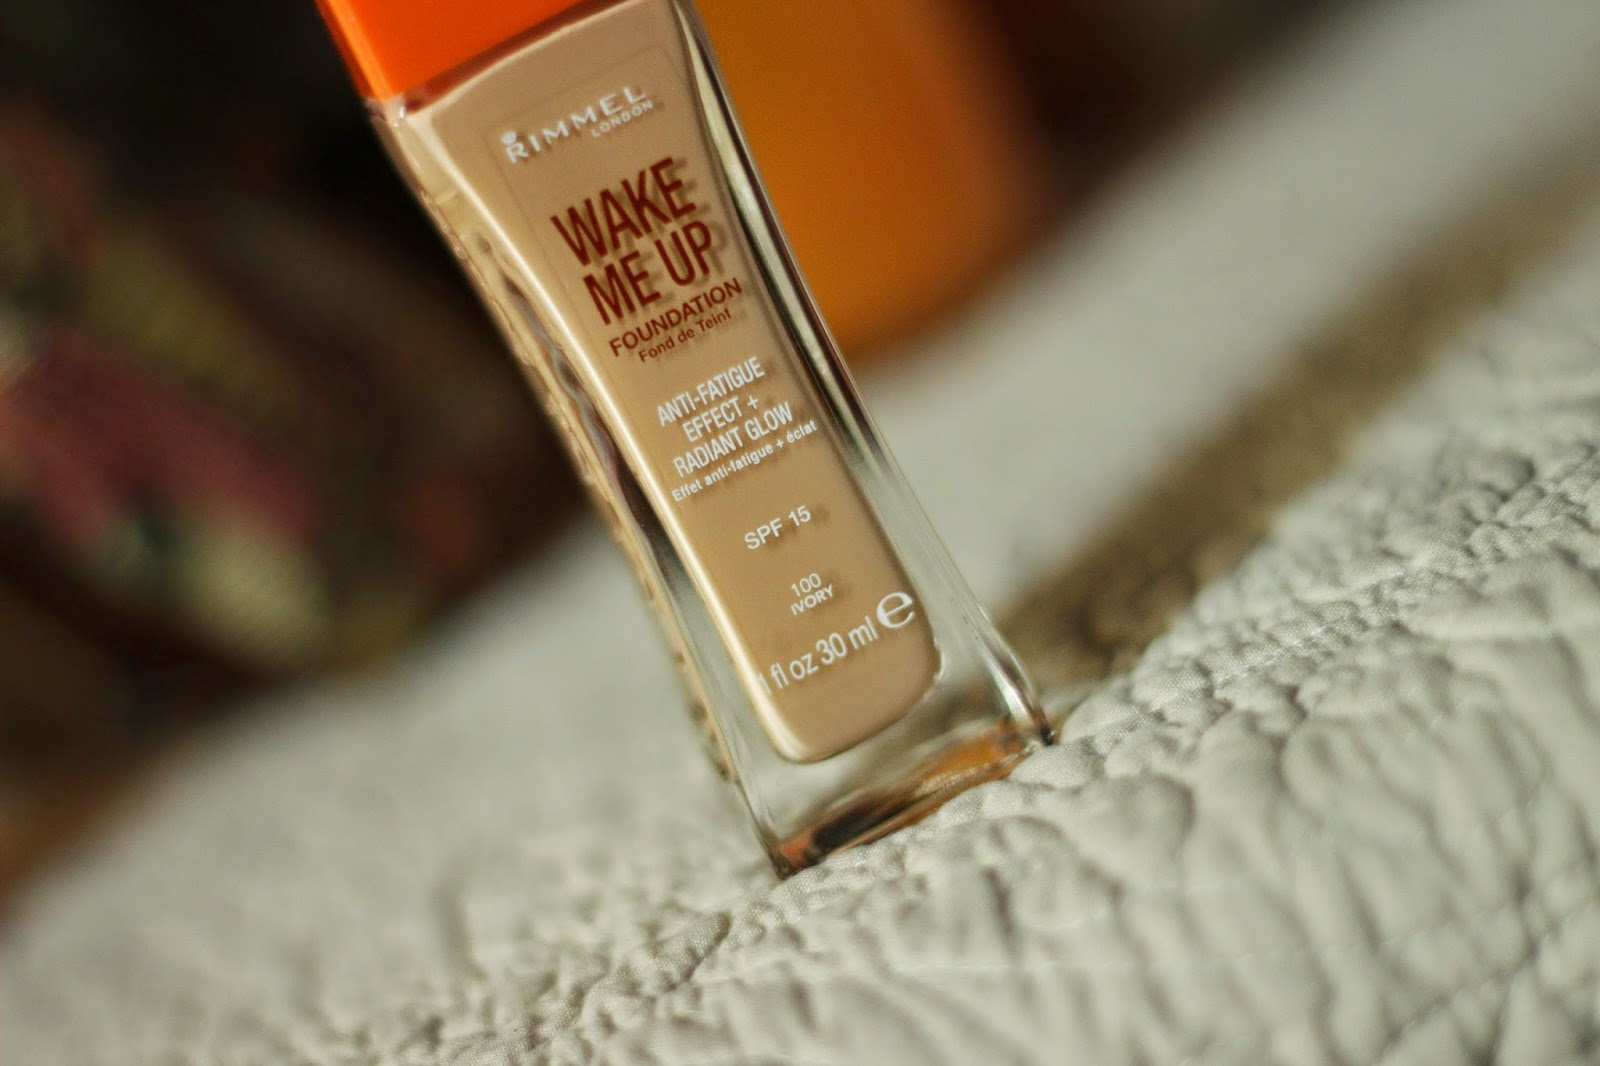 review rimmel wake me up foundation